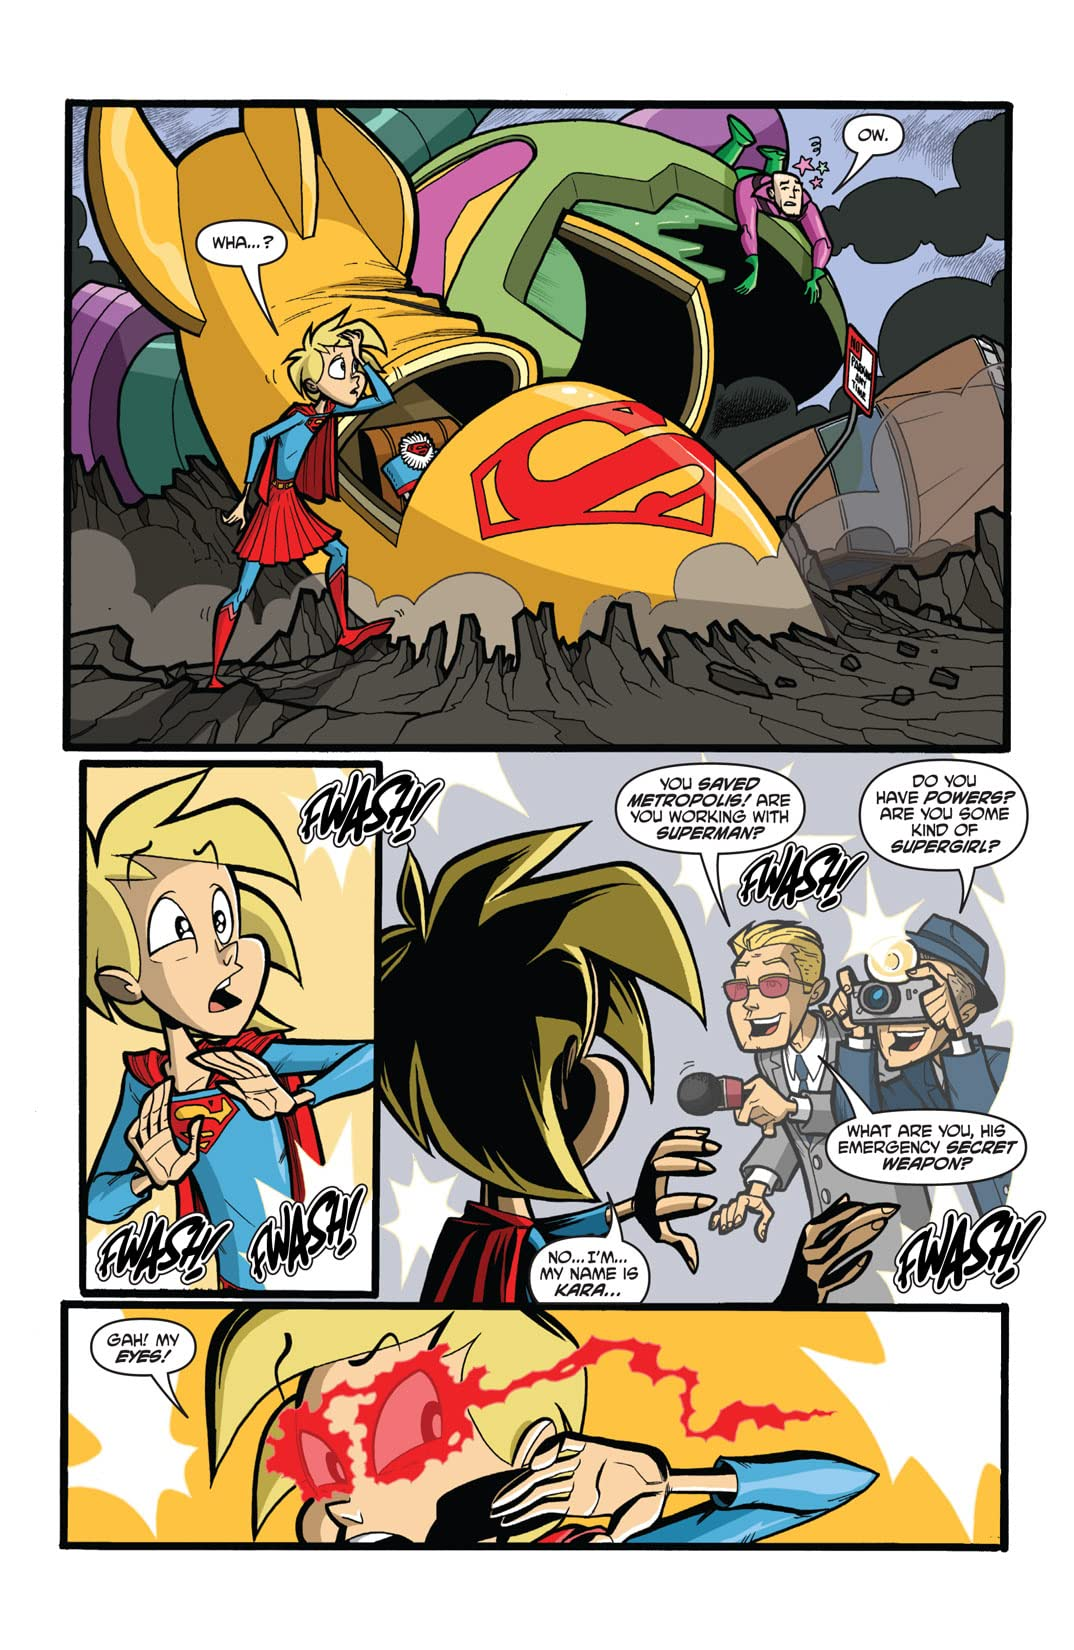 Supergirl: Cosmic Adventures in the 8th Grade #1 (of 6)